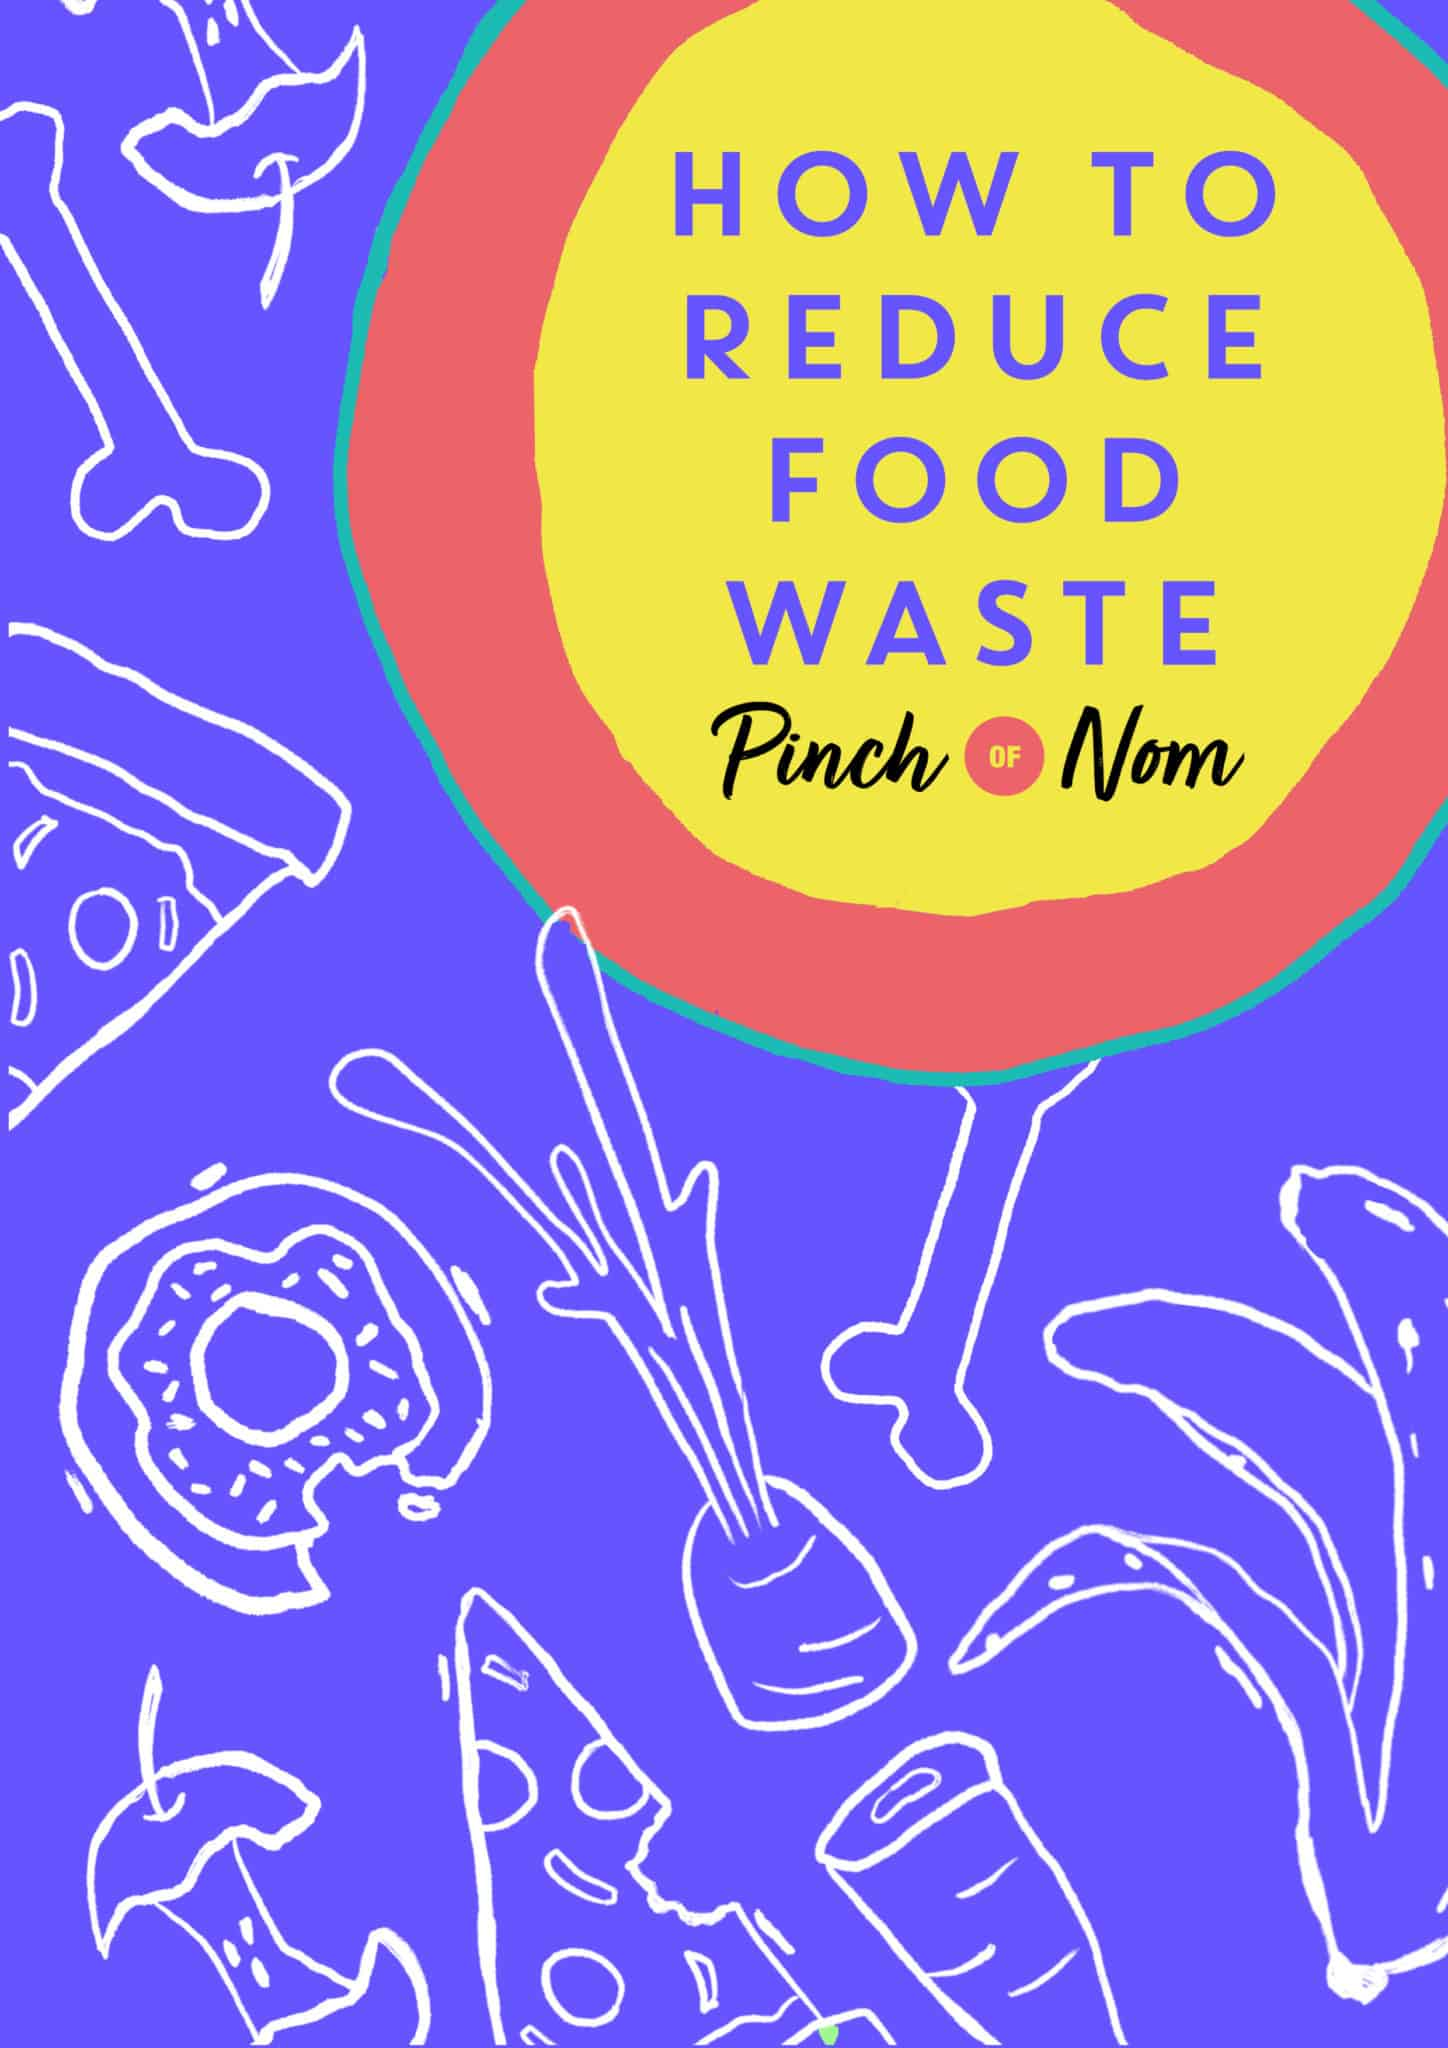 How to reduce food waste | Pinch of Nom Slimming Recipes